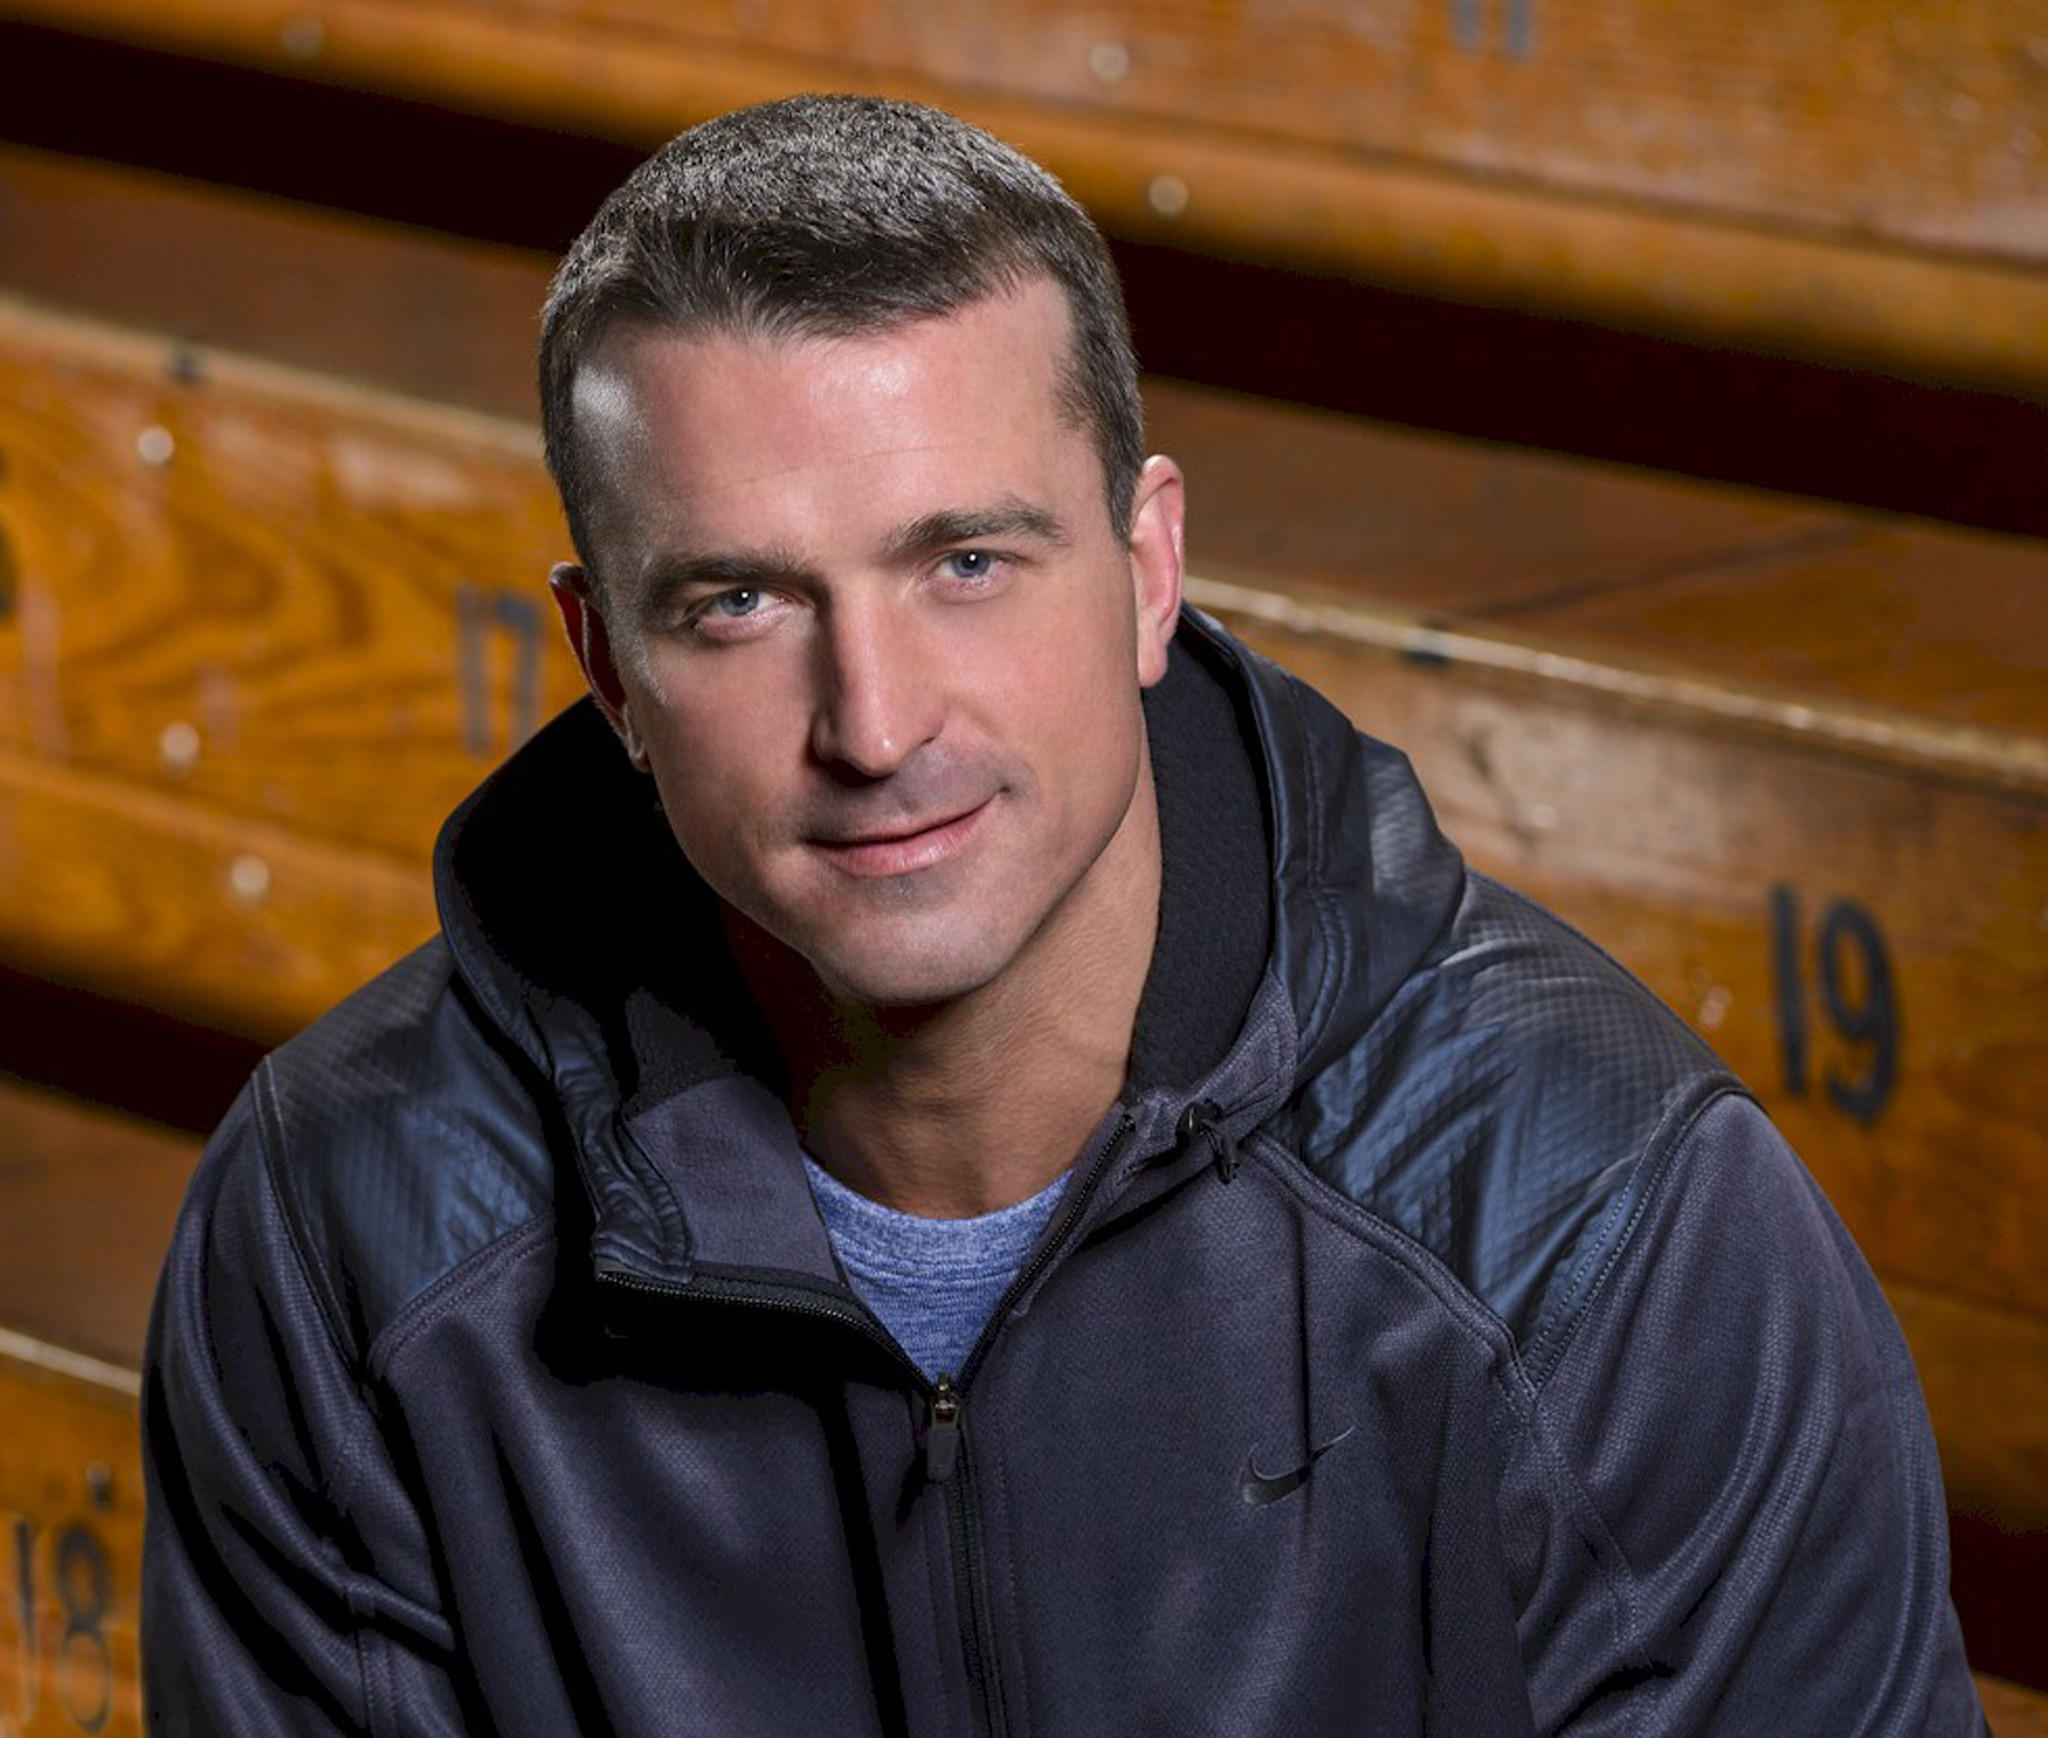 TBT: Chris Herren continues to promote the good in everyone